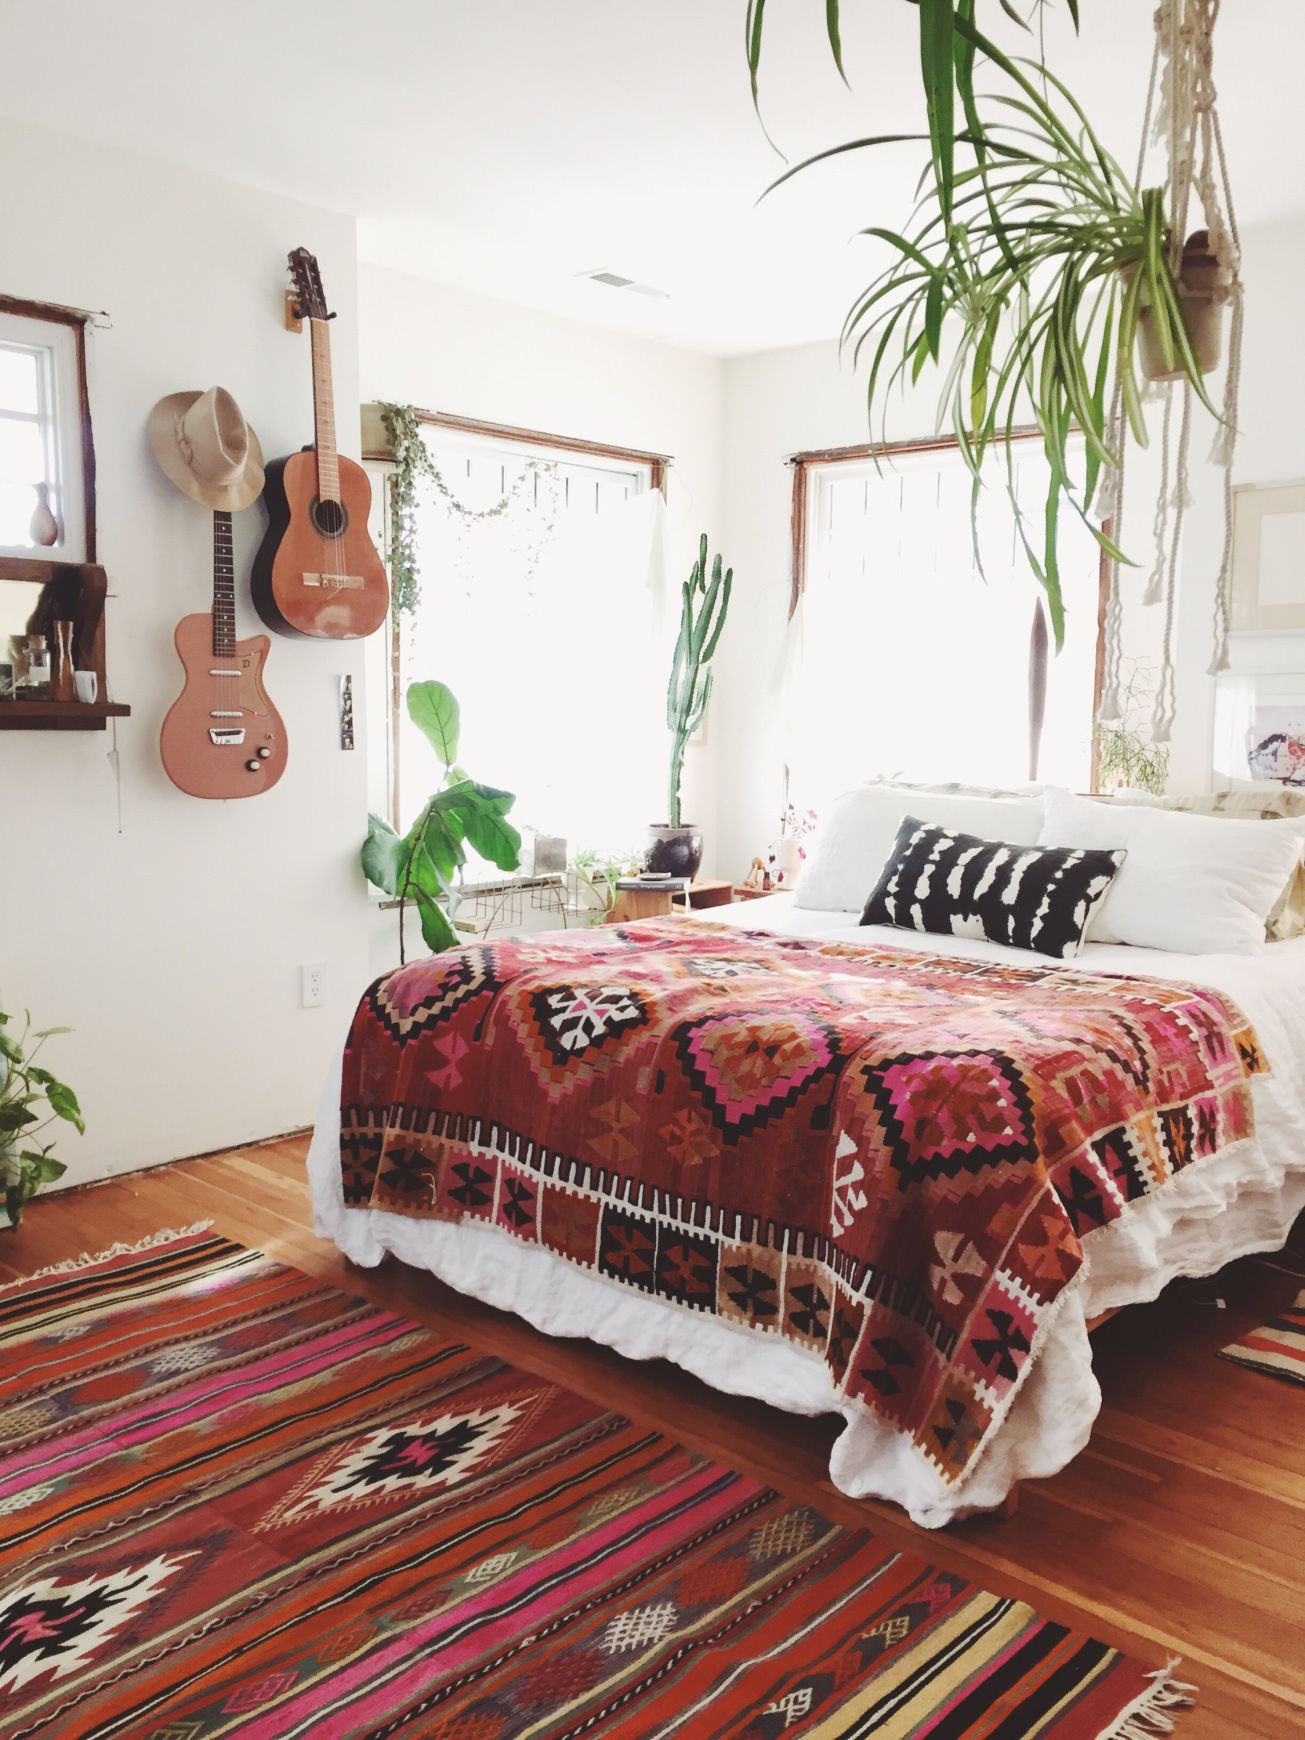 26 Bohemian Bedrooms That ll Make You Want to Redecorate ASAP   Home     25 Bohemian Bedroom Decor Ideas That Will Make You Want to Redecorate ASAP     stylecaster